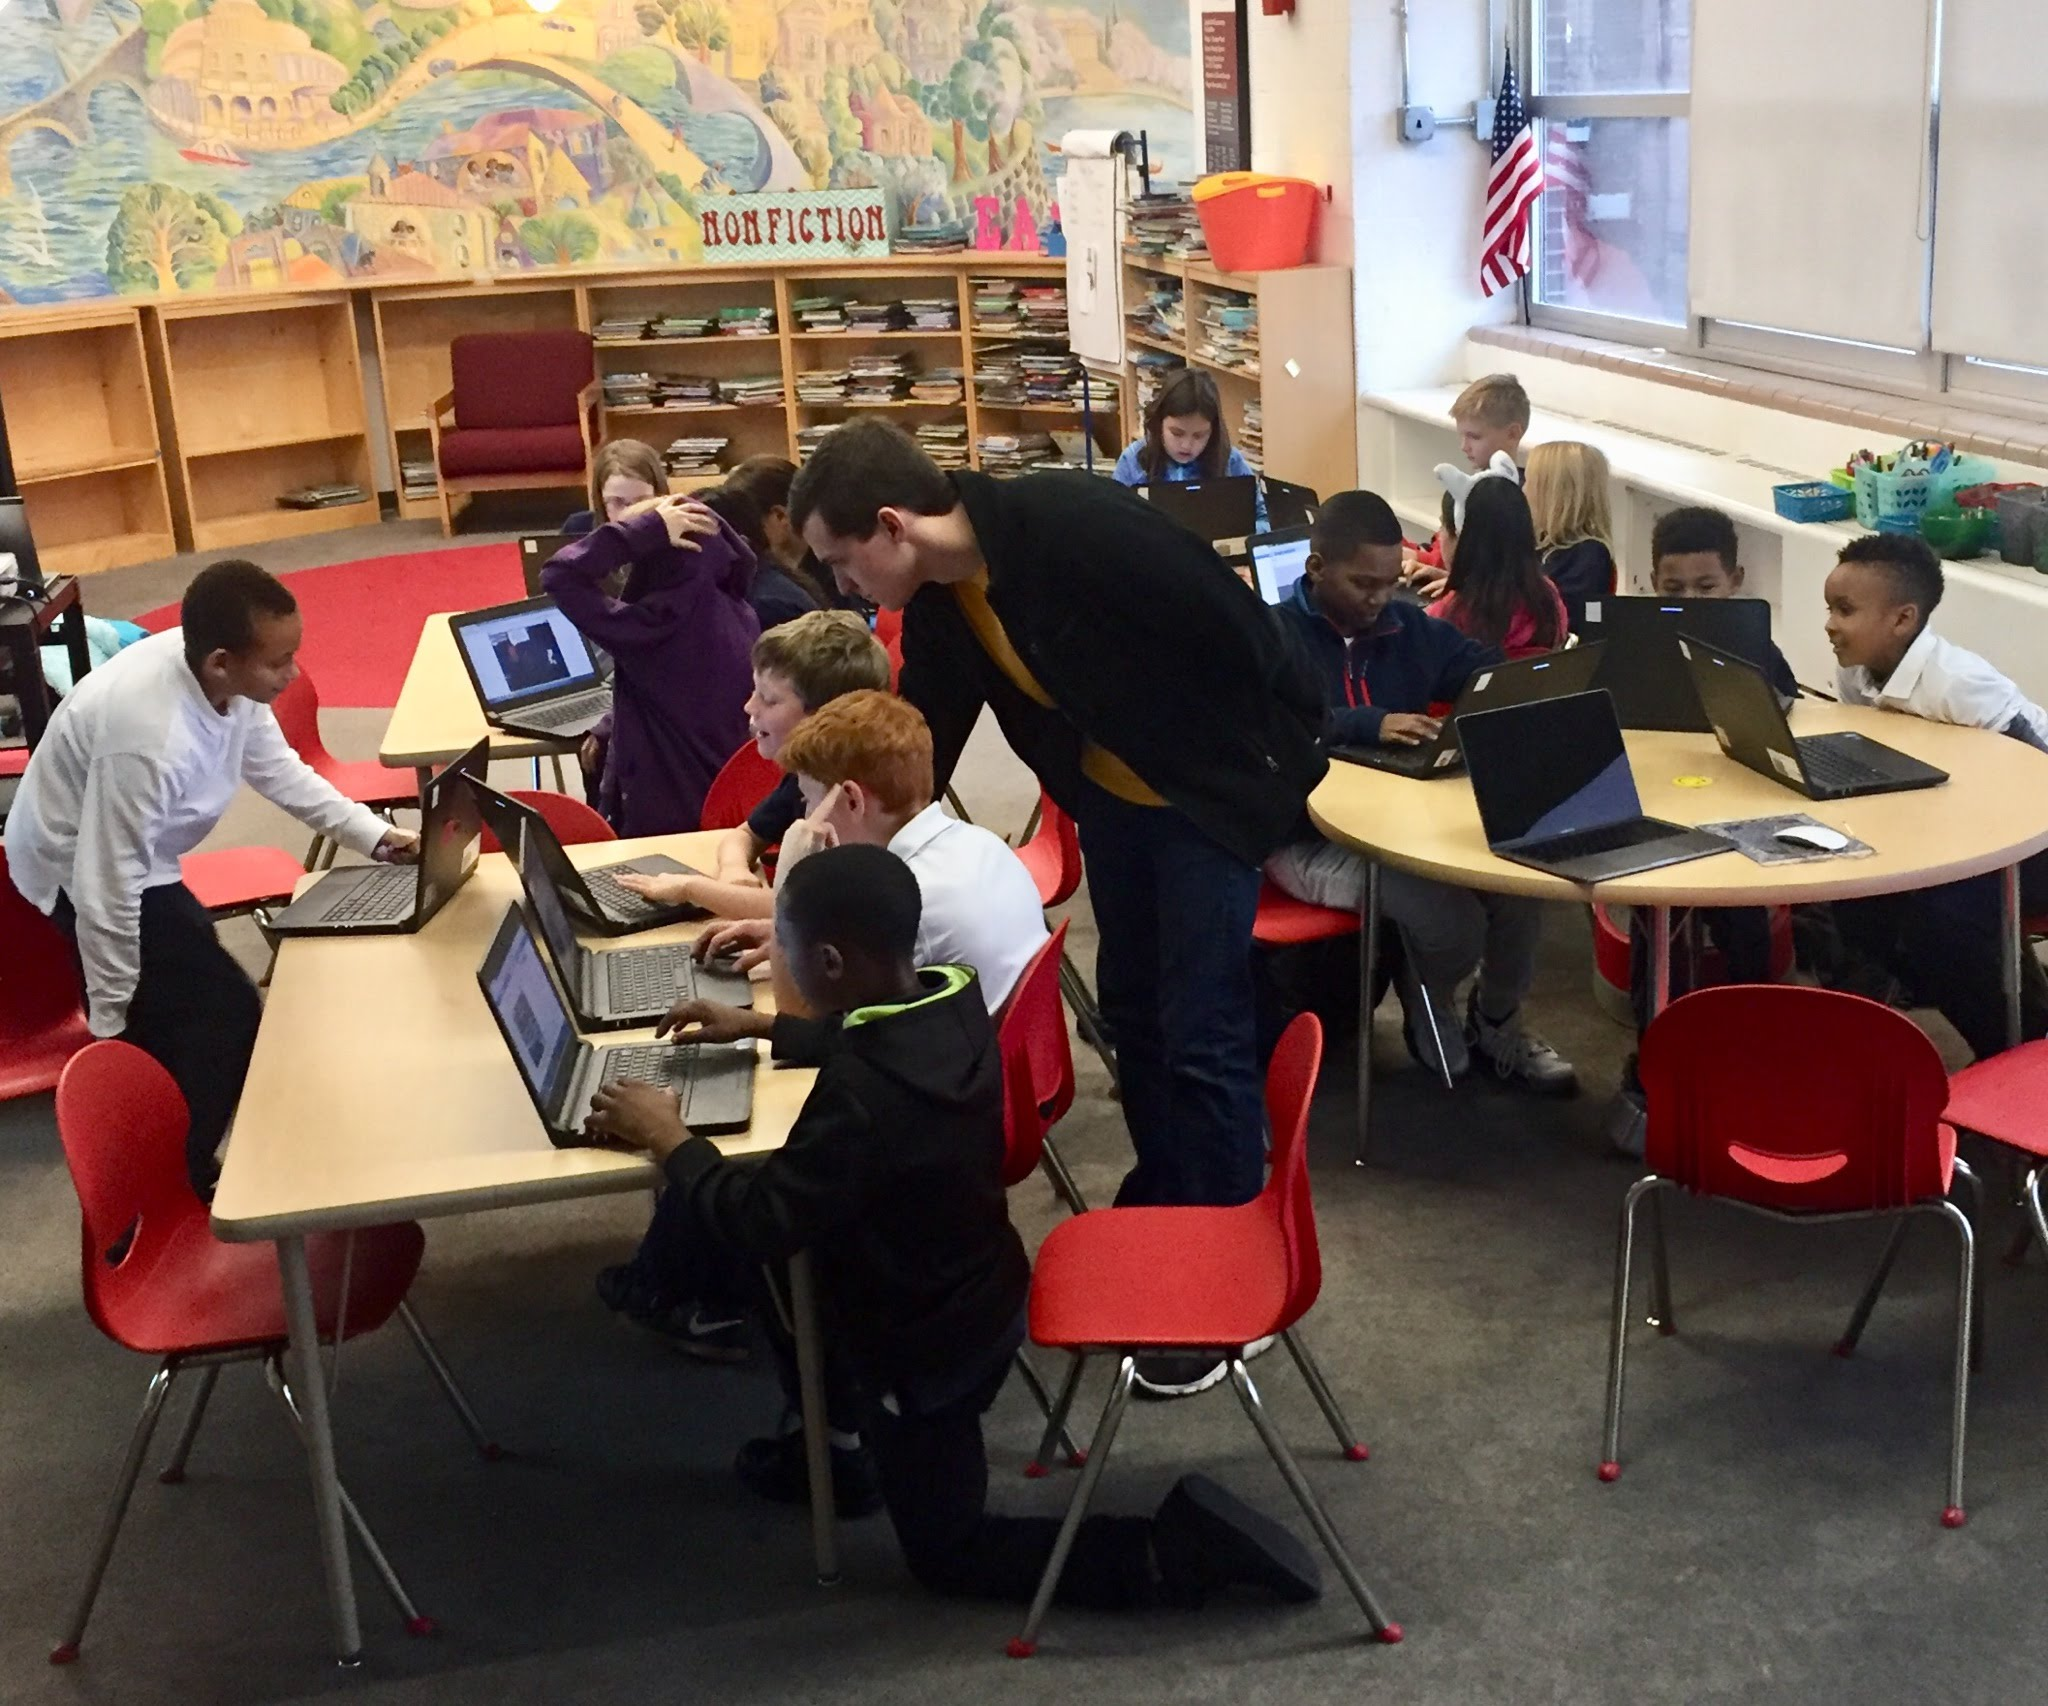 Code4Life participants at Maury Elementary in Washington, DC working hard.